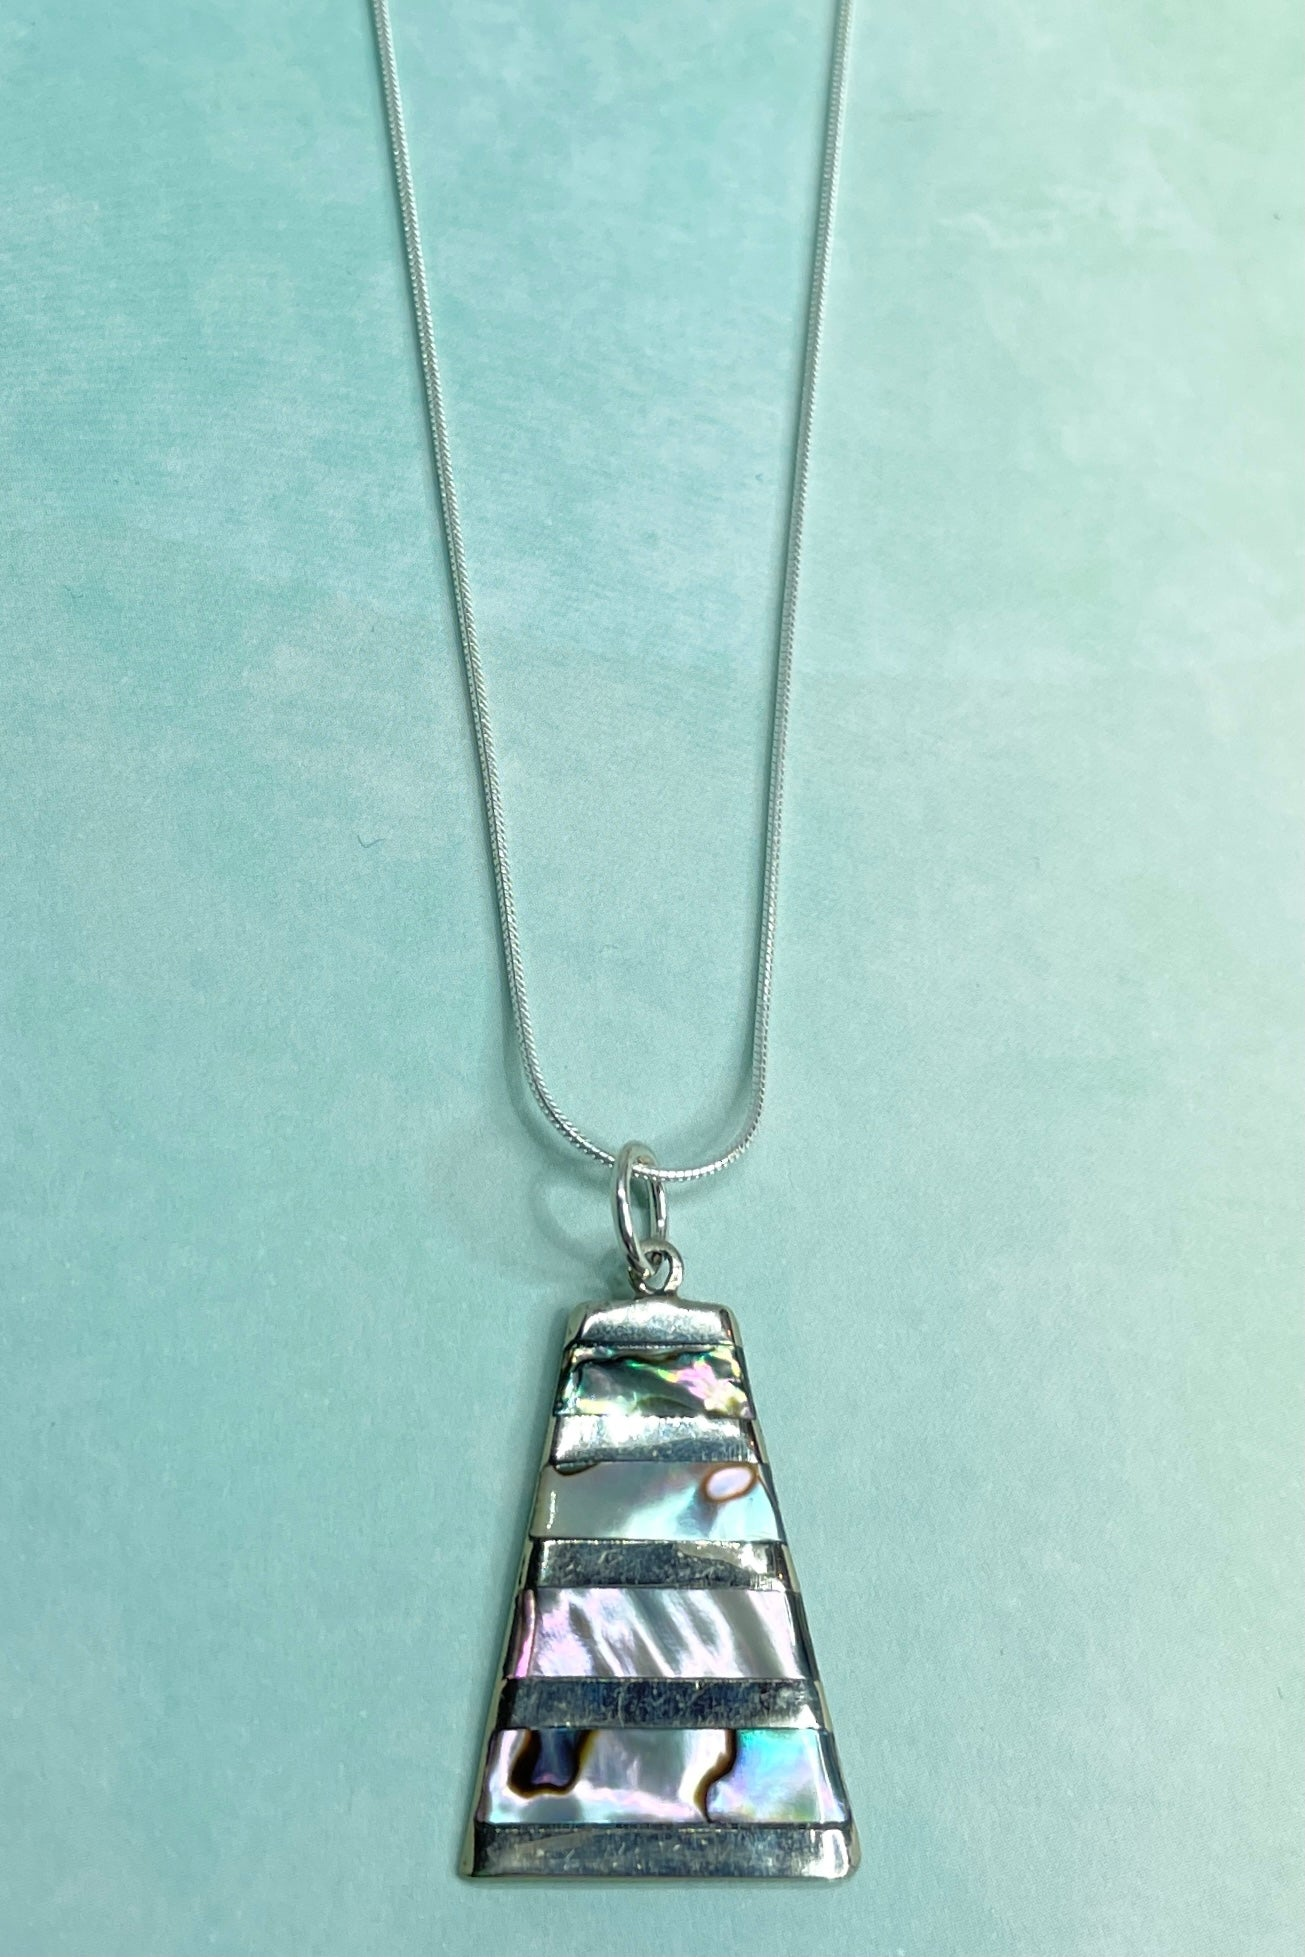 A lovely use of the mystical Paua shell in this unusual triangular pendant, set in silver.